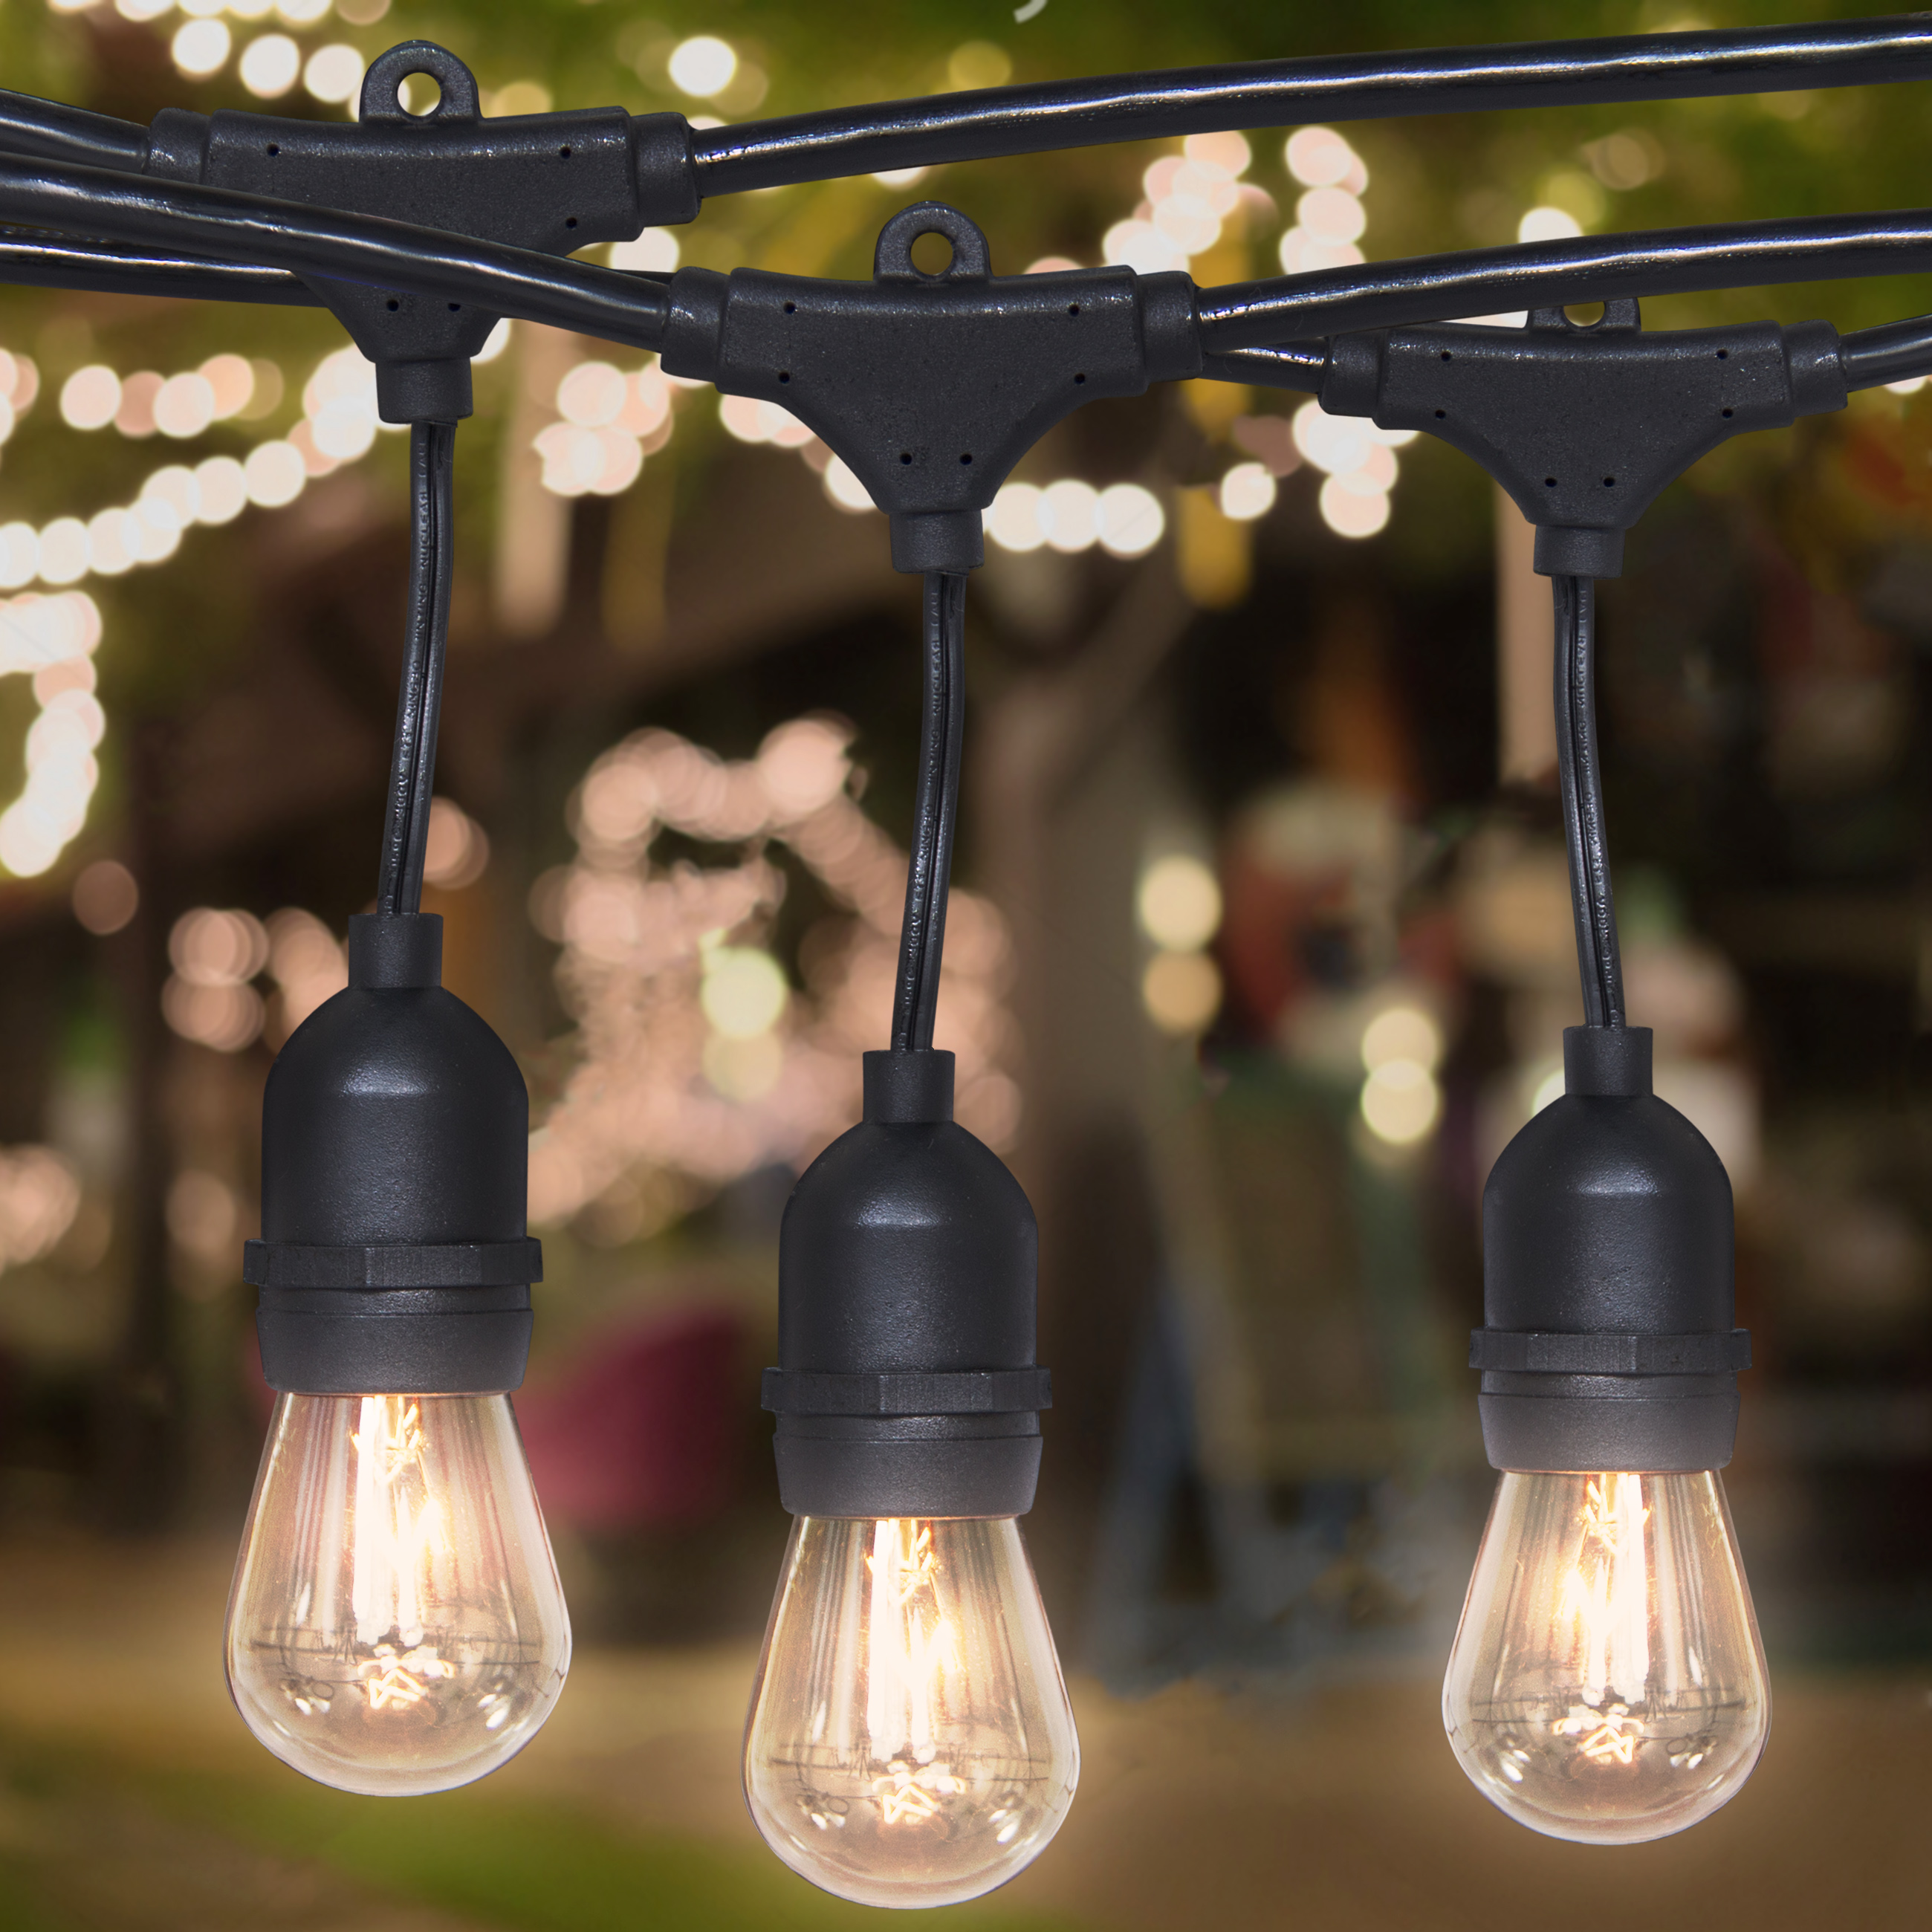 Best Choice Products 48' Commercial Weatherproof Outdoor String Lights 16 Clear Bulbs- Party, Restaurant, Patio Lights by